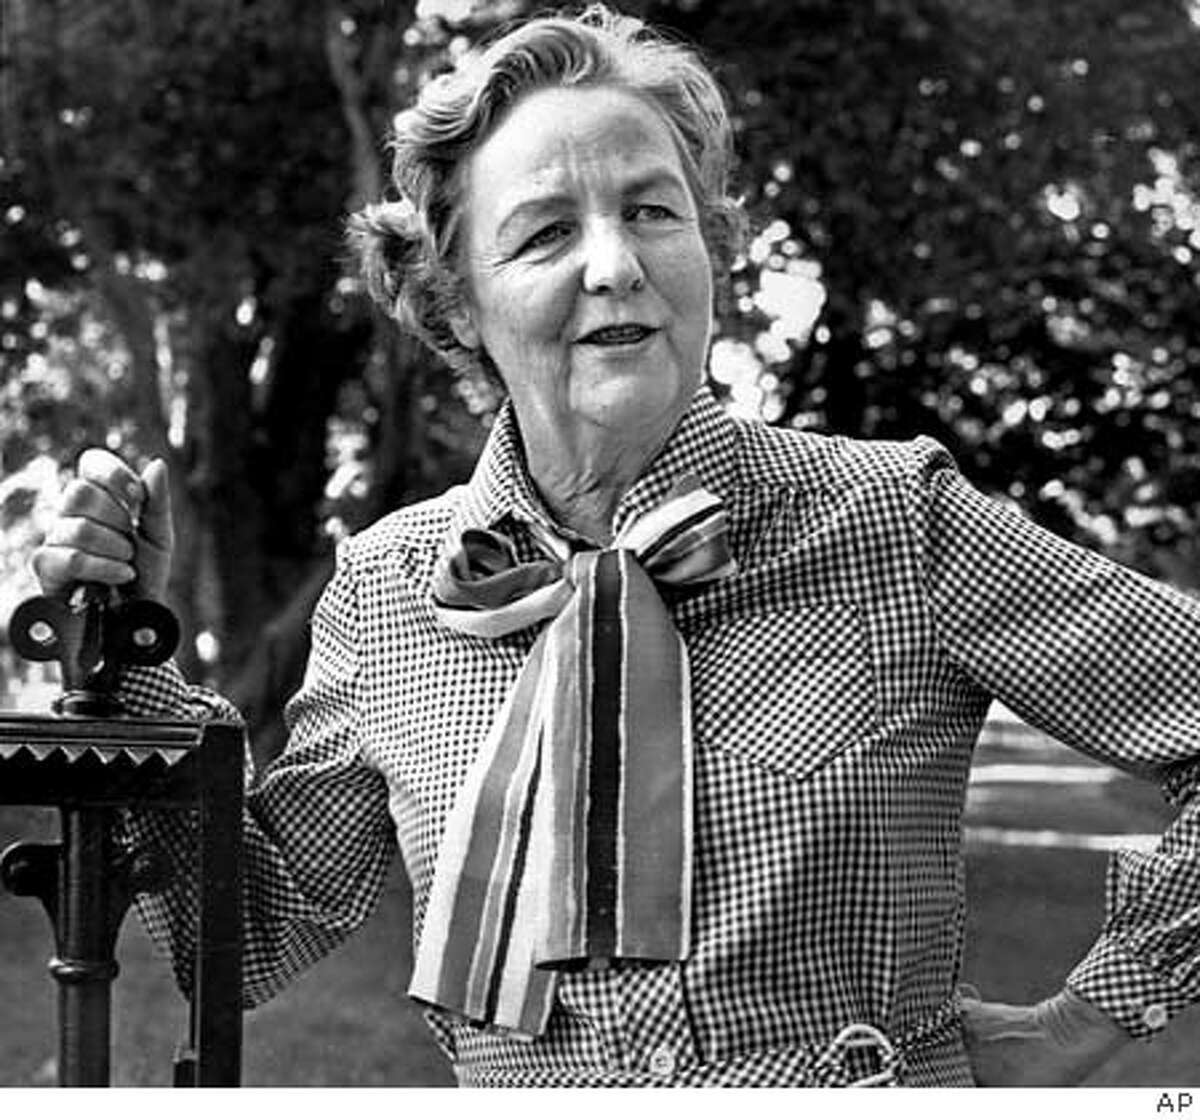 Jessica Mitford believed she had her own things to do in life and expected her children to find their own things to do. Associated Press Photo, 1979